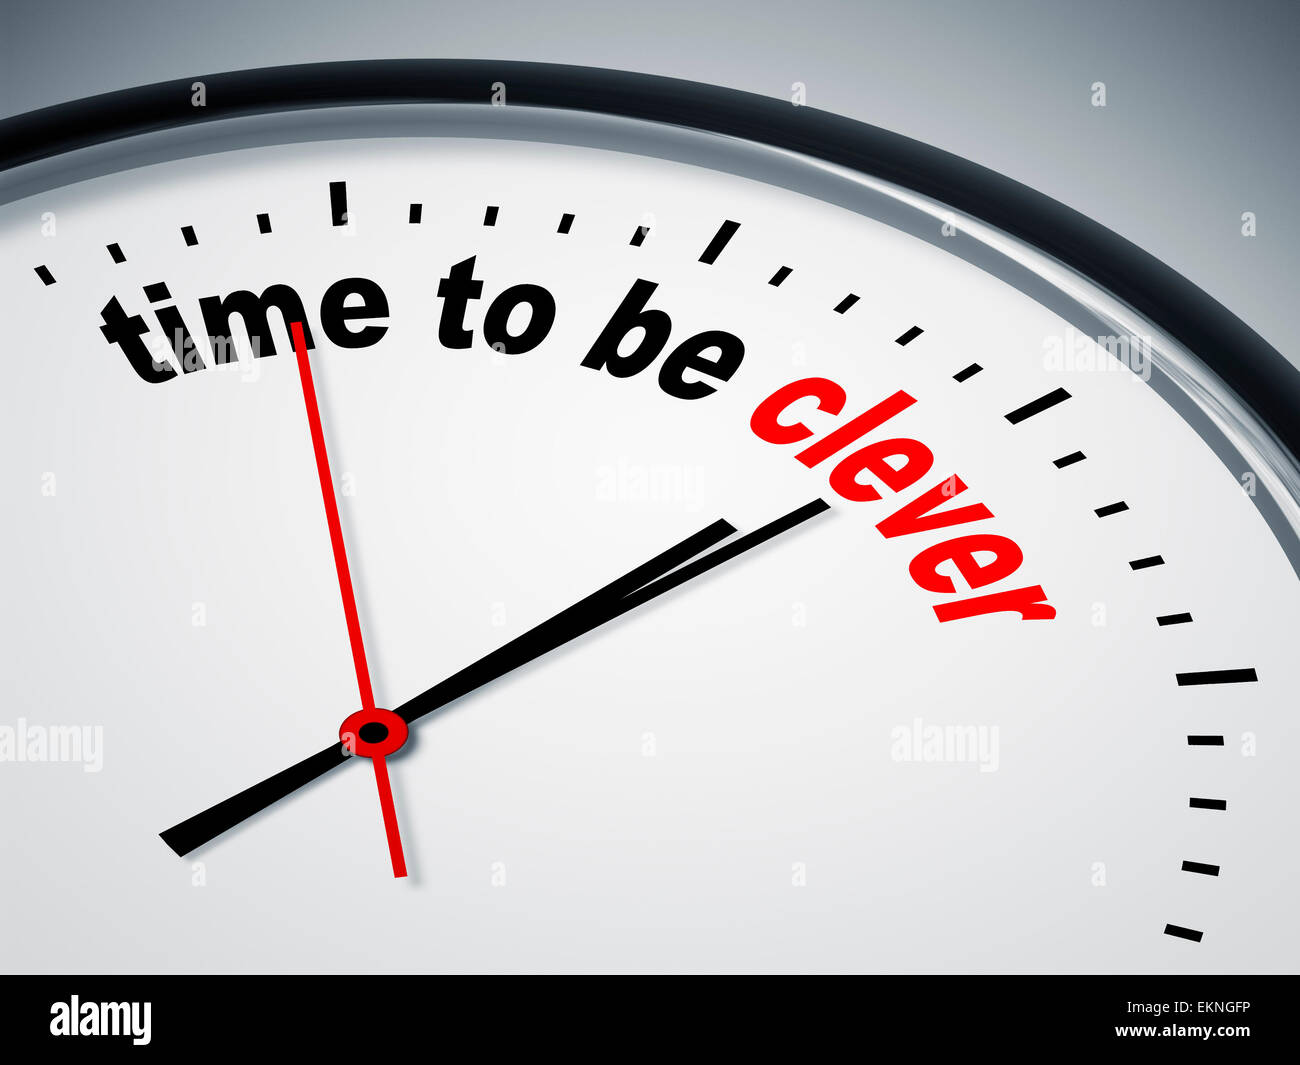 time to be clever - Stock Image